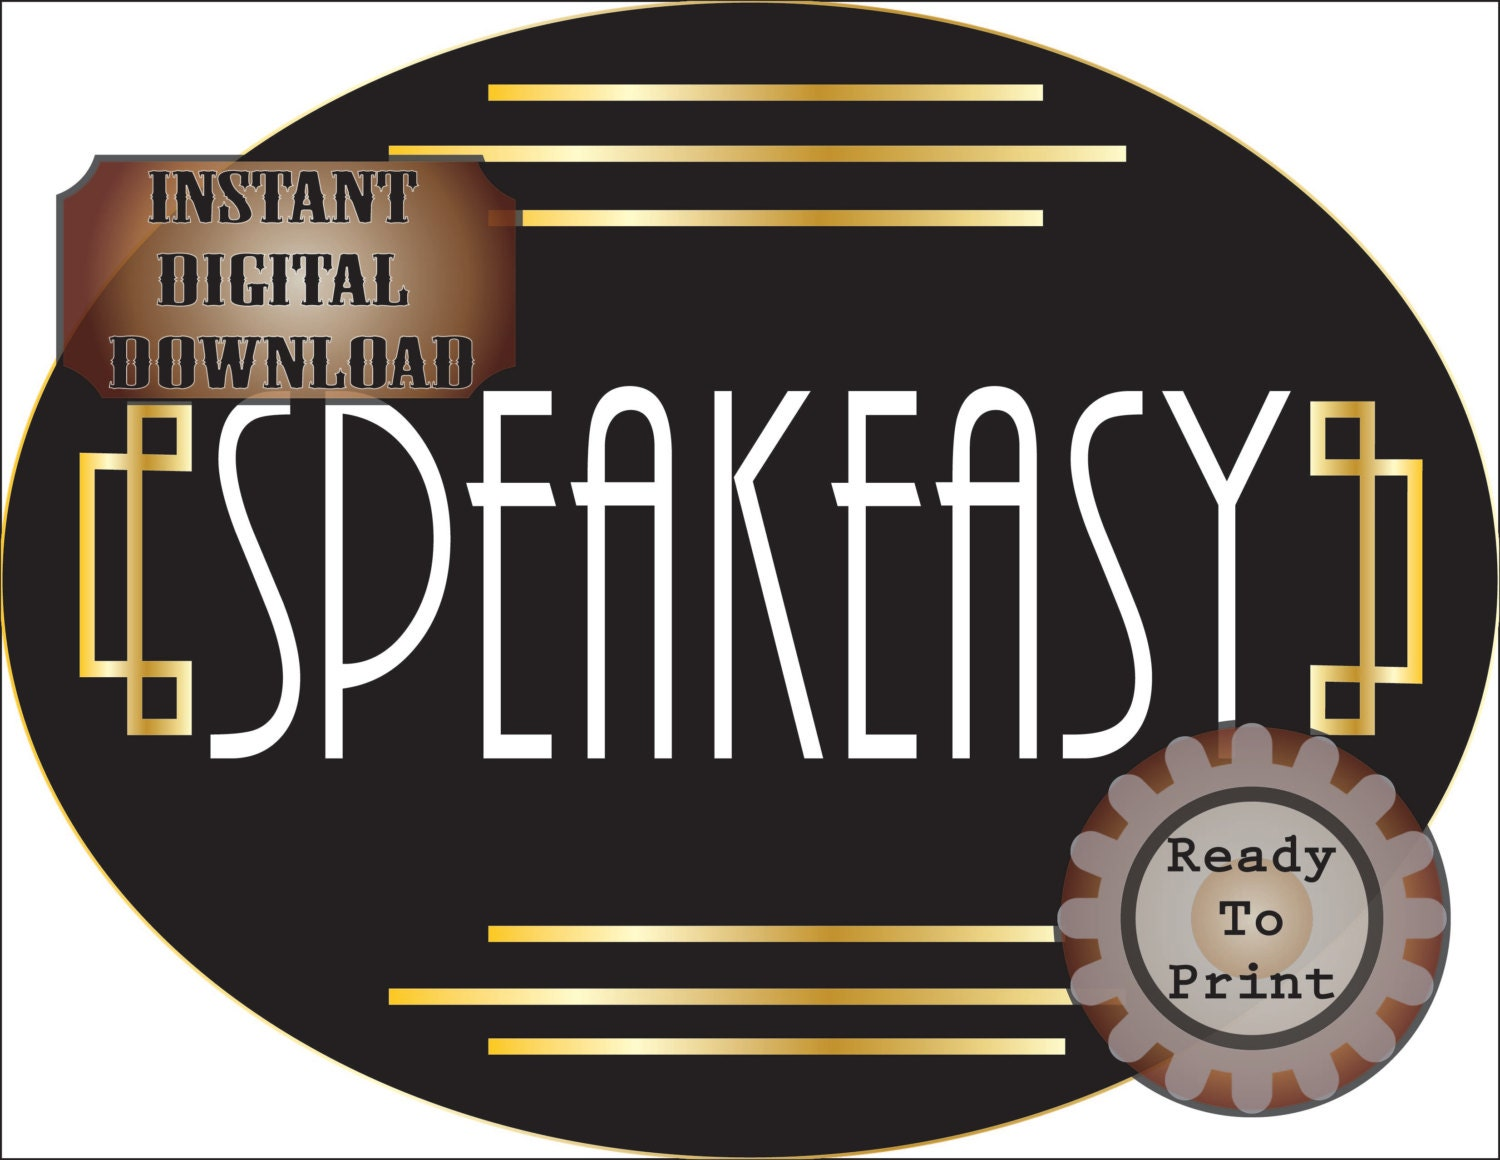 Small Speakeasy Sign Printable Oval Roaring 20s Prohibition